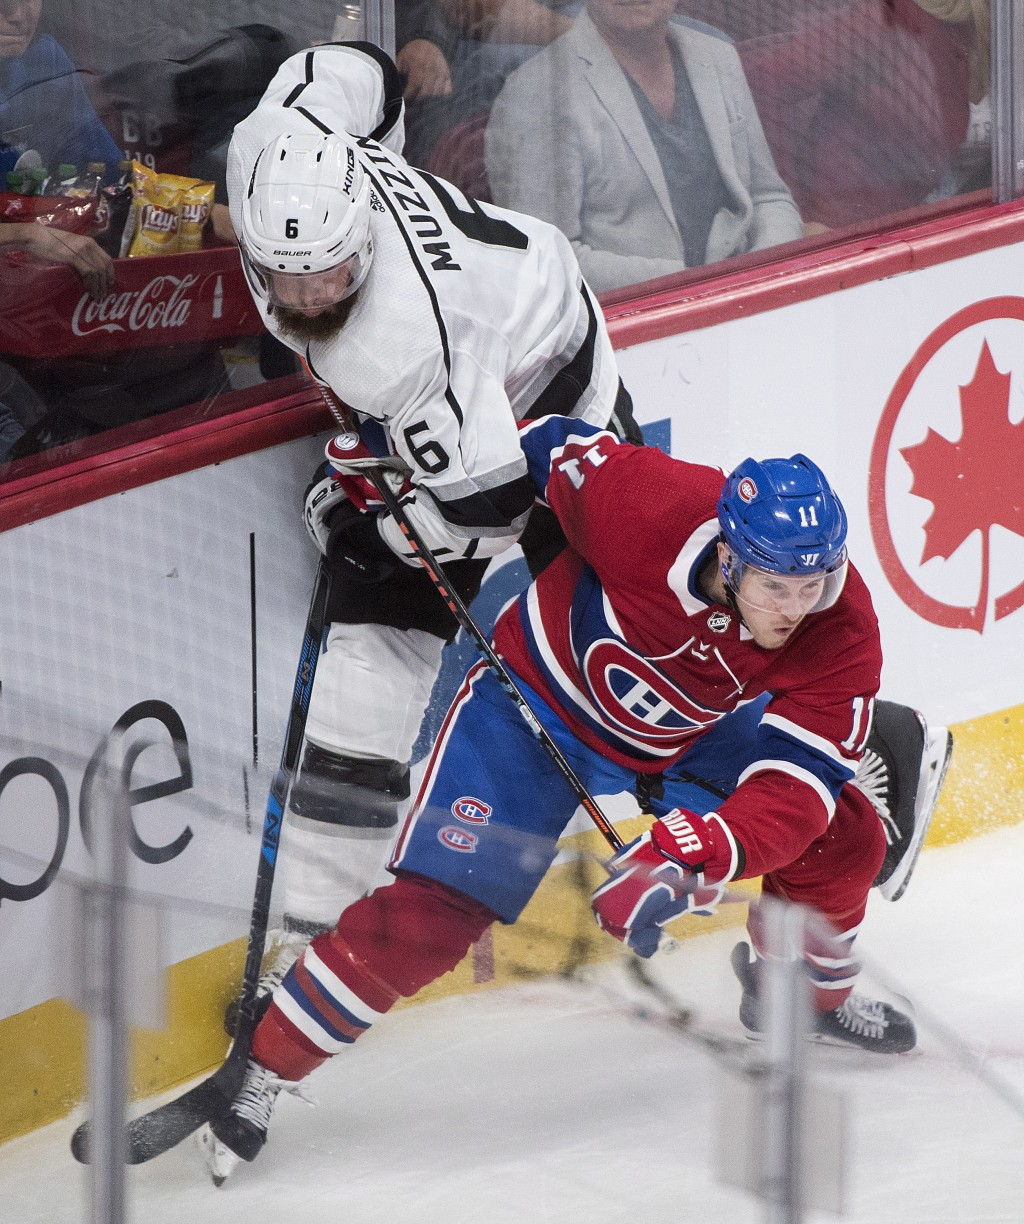 Los Angeles Kings' Jake Muzzin, left, collides with Montreal Canadiens' Brendan Gallagher during the first period of an NHL hockey game Thursday, Oct.